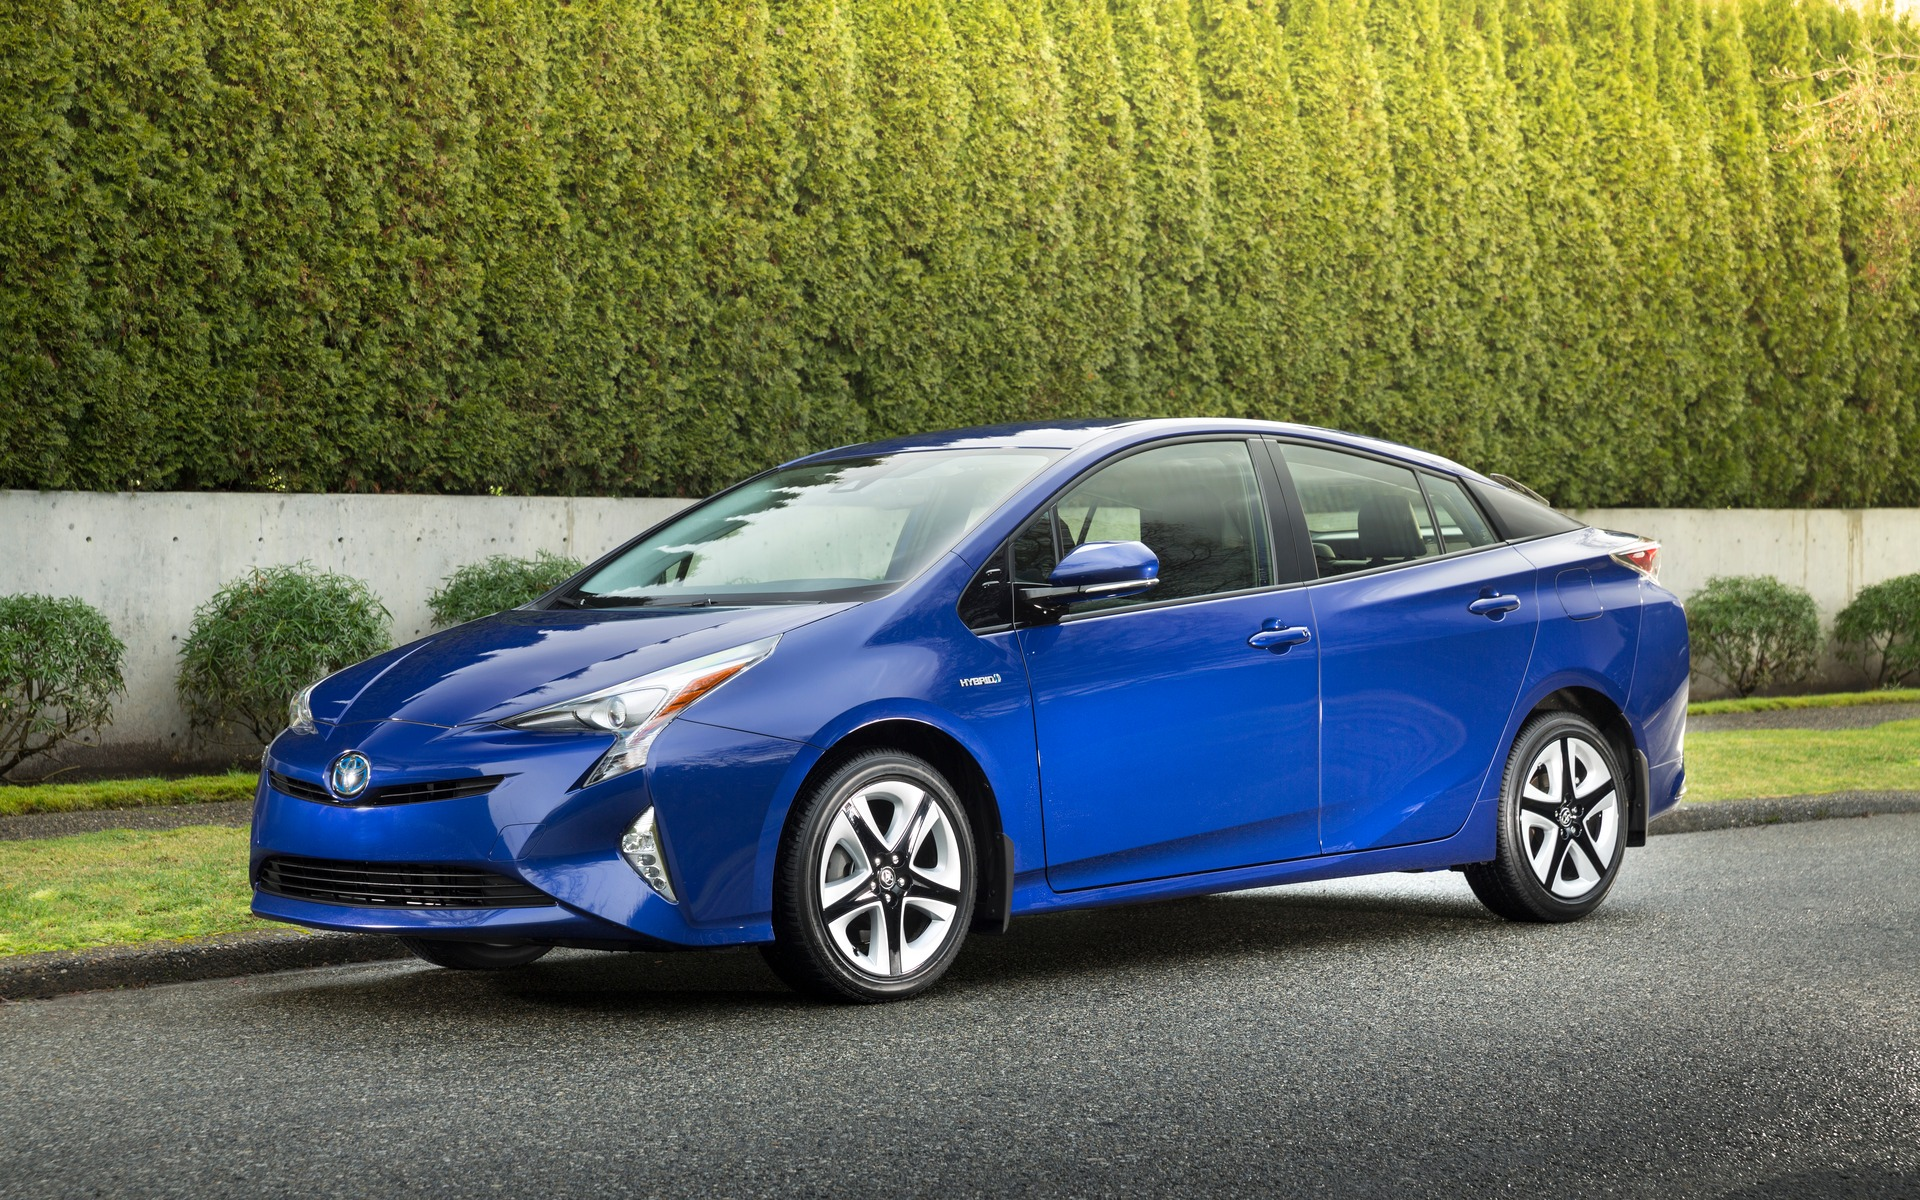 <p>Toyota Prius, 2017 Canadian Green Car of the Year according to AJAC.</p>